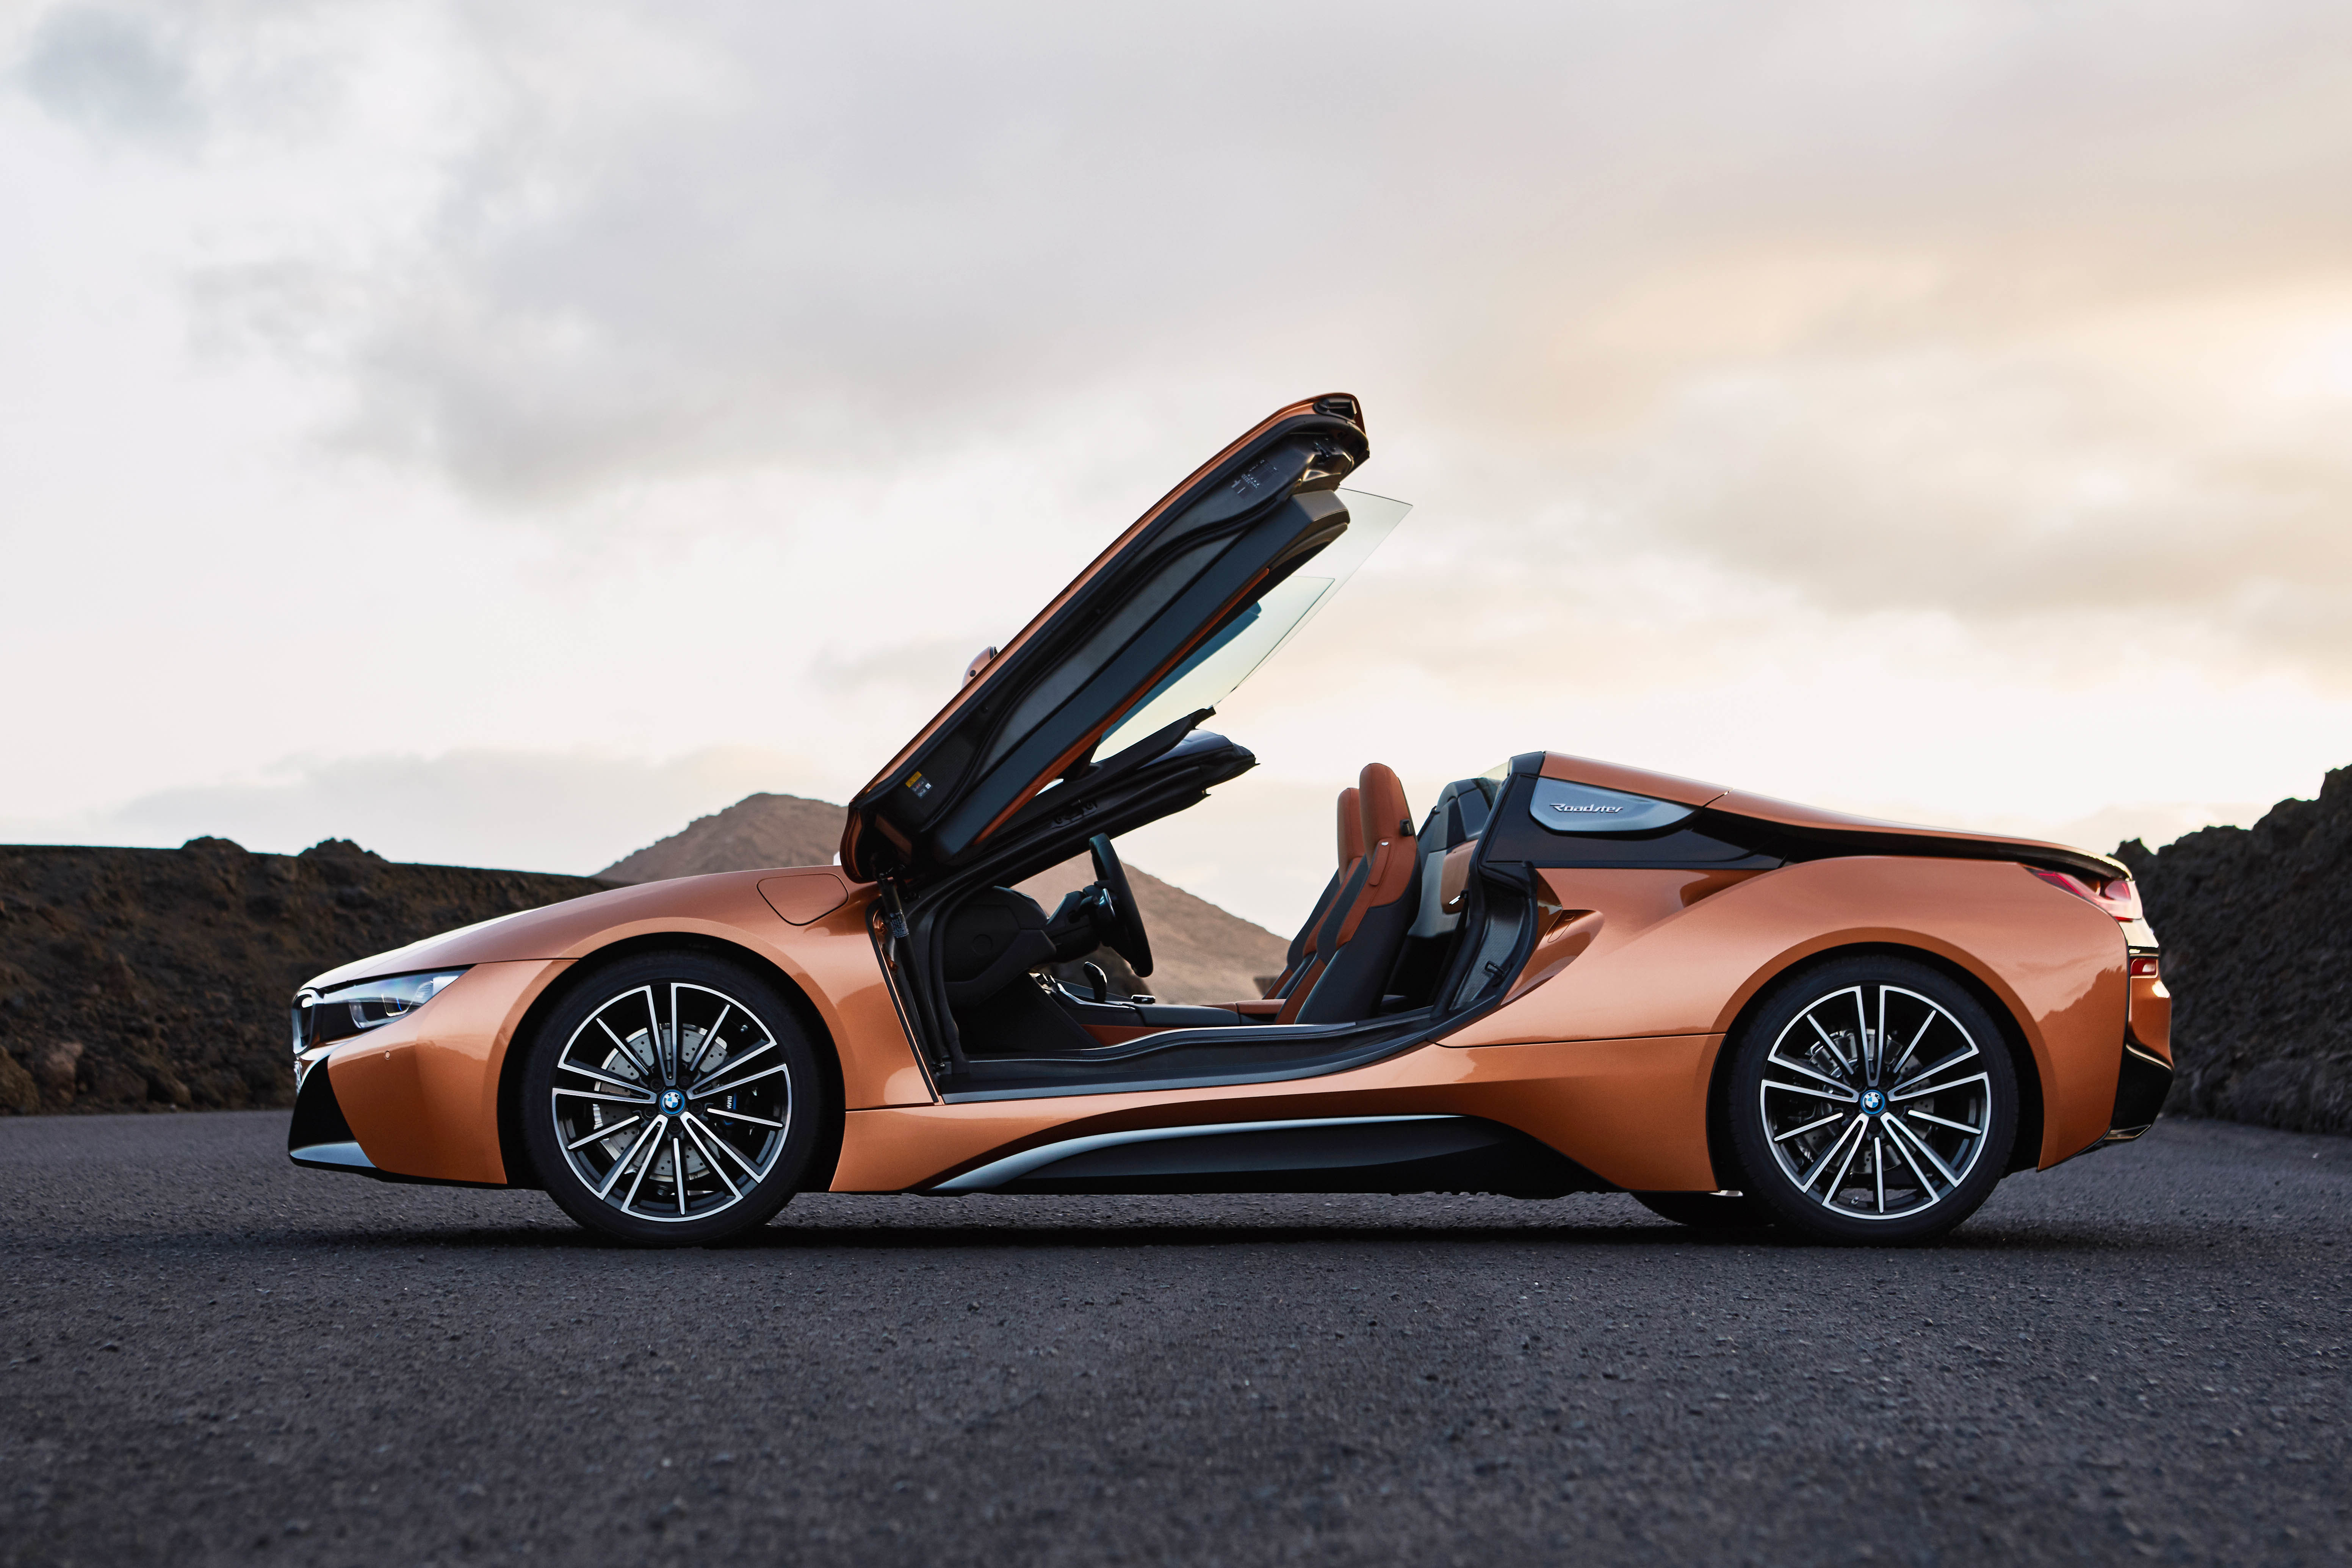 Bmw S I8 Roadster Is Now Available Thecanadiantechie